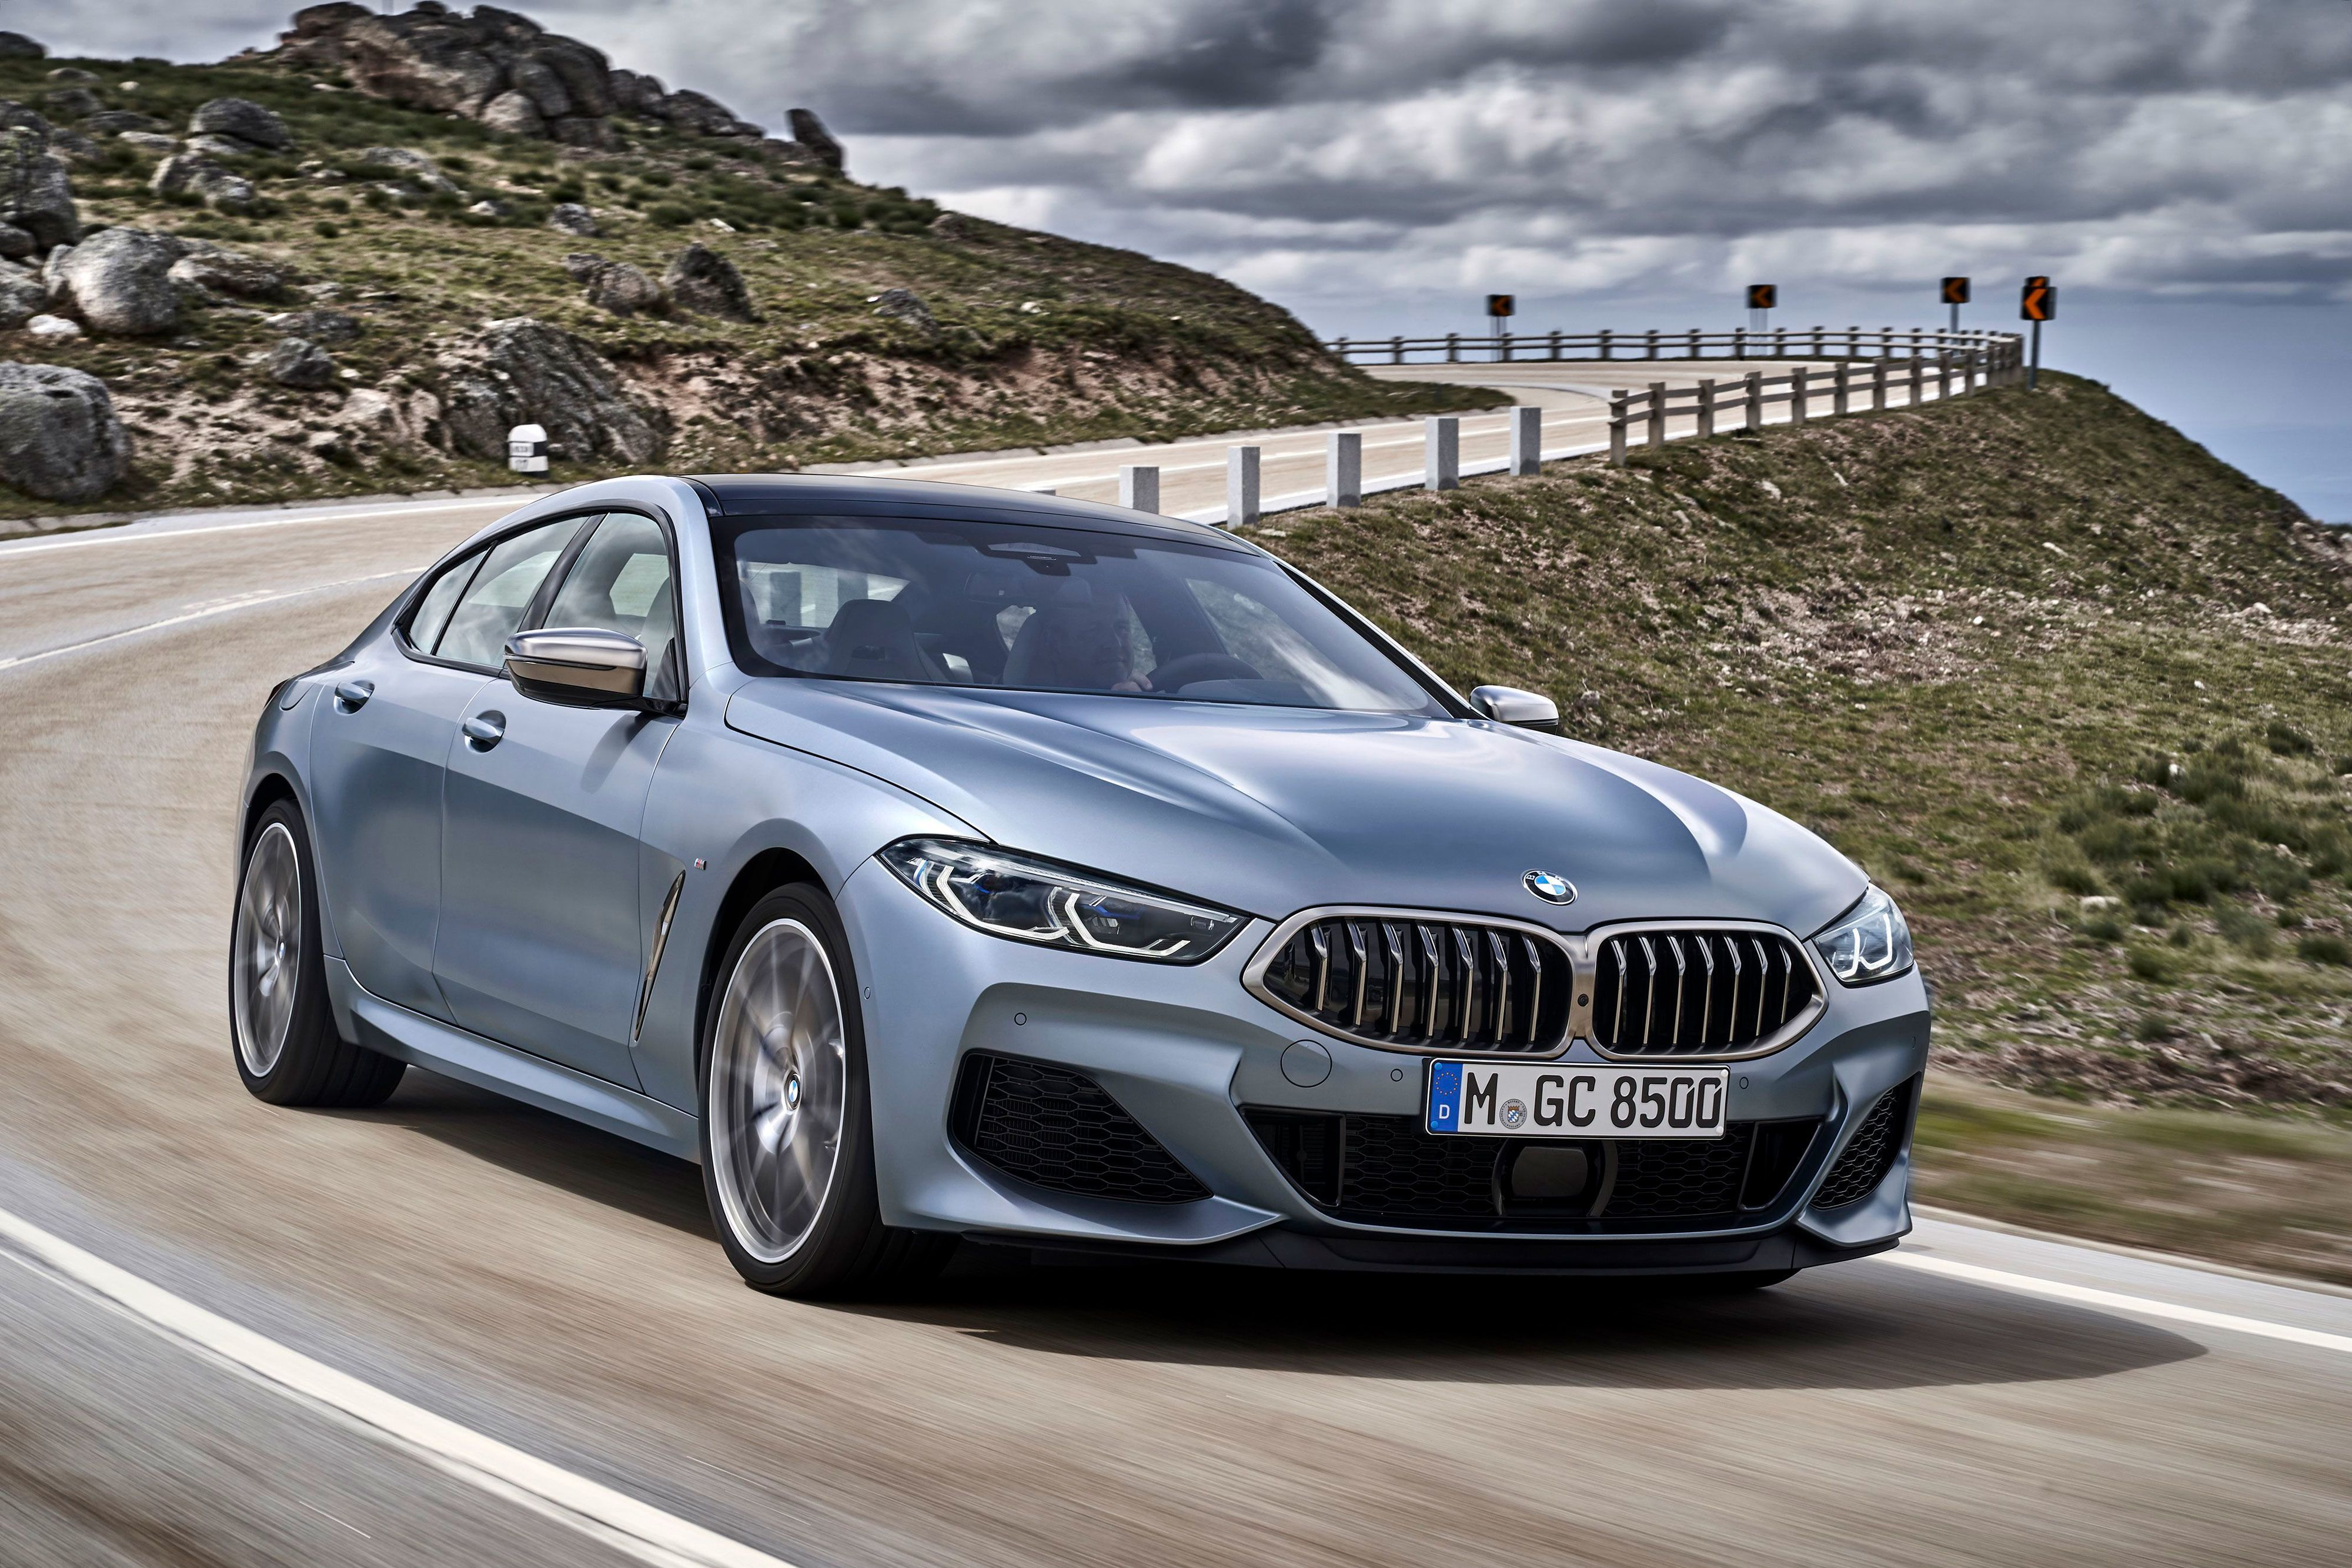 Bmw Debuts 4 Door 8 Series Gran Coupe With Entry Price Around 86000 New Bmw Bmw Gran Coupe